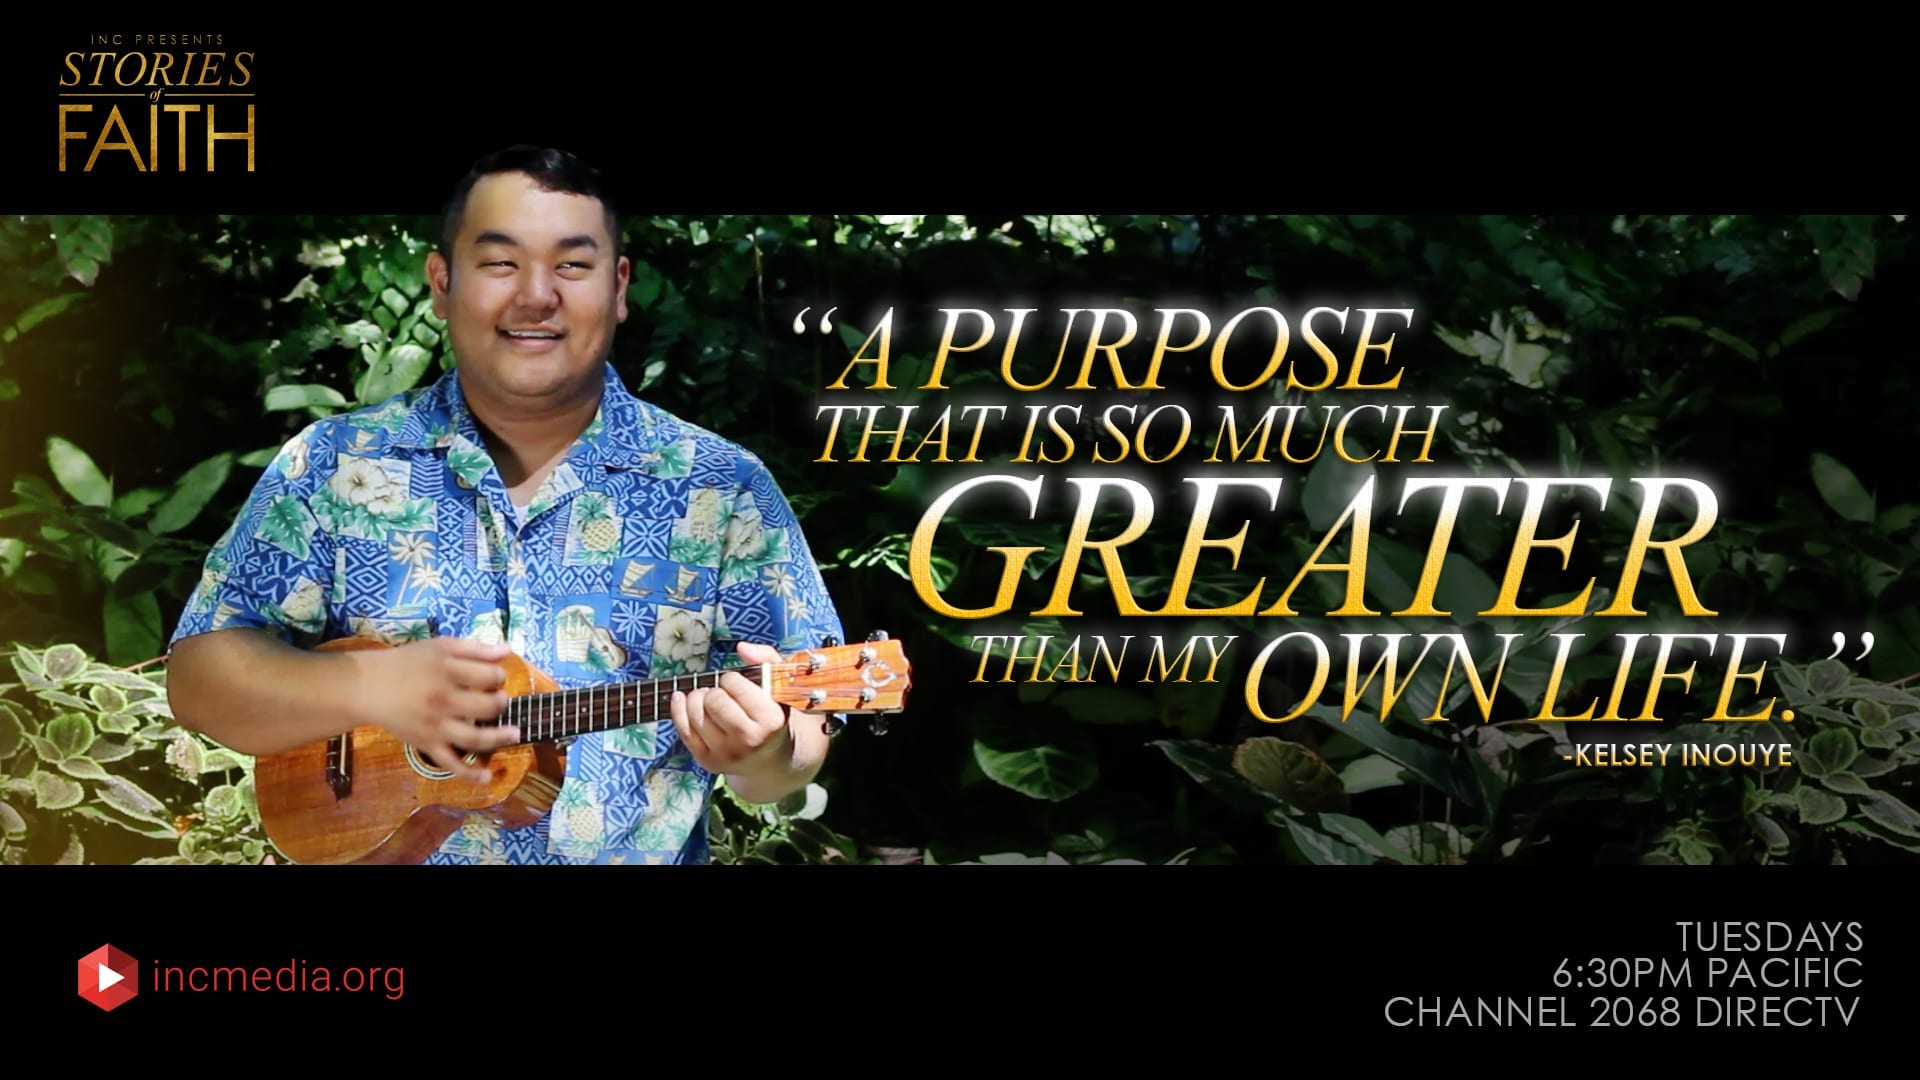 A Musician Finds His Life's Purpose